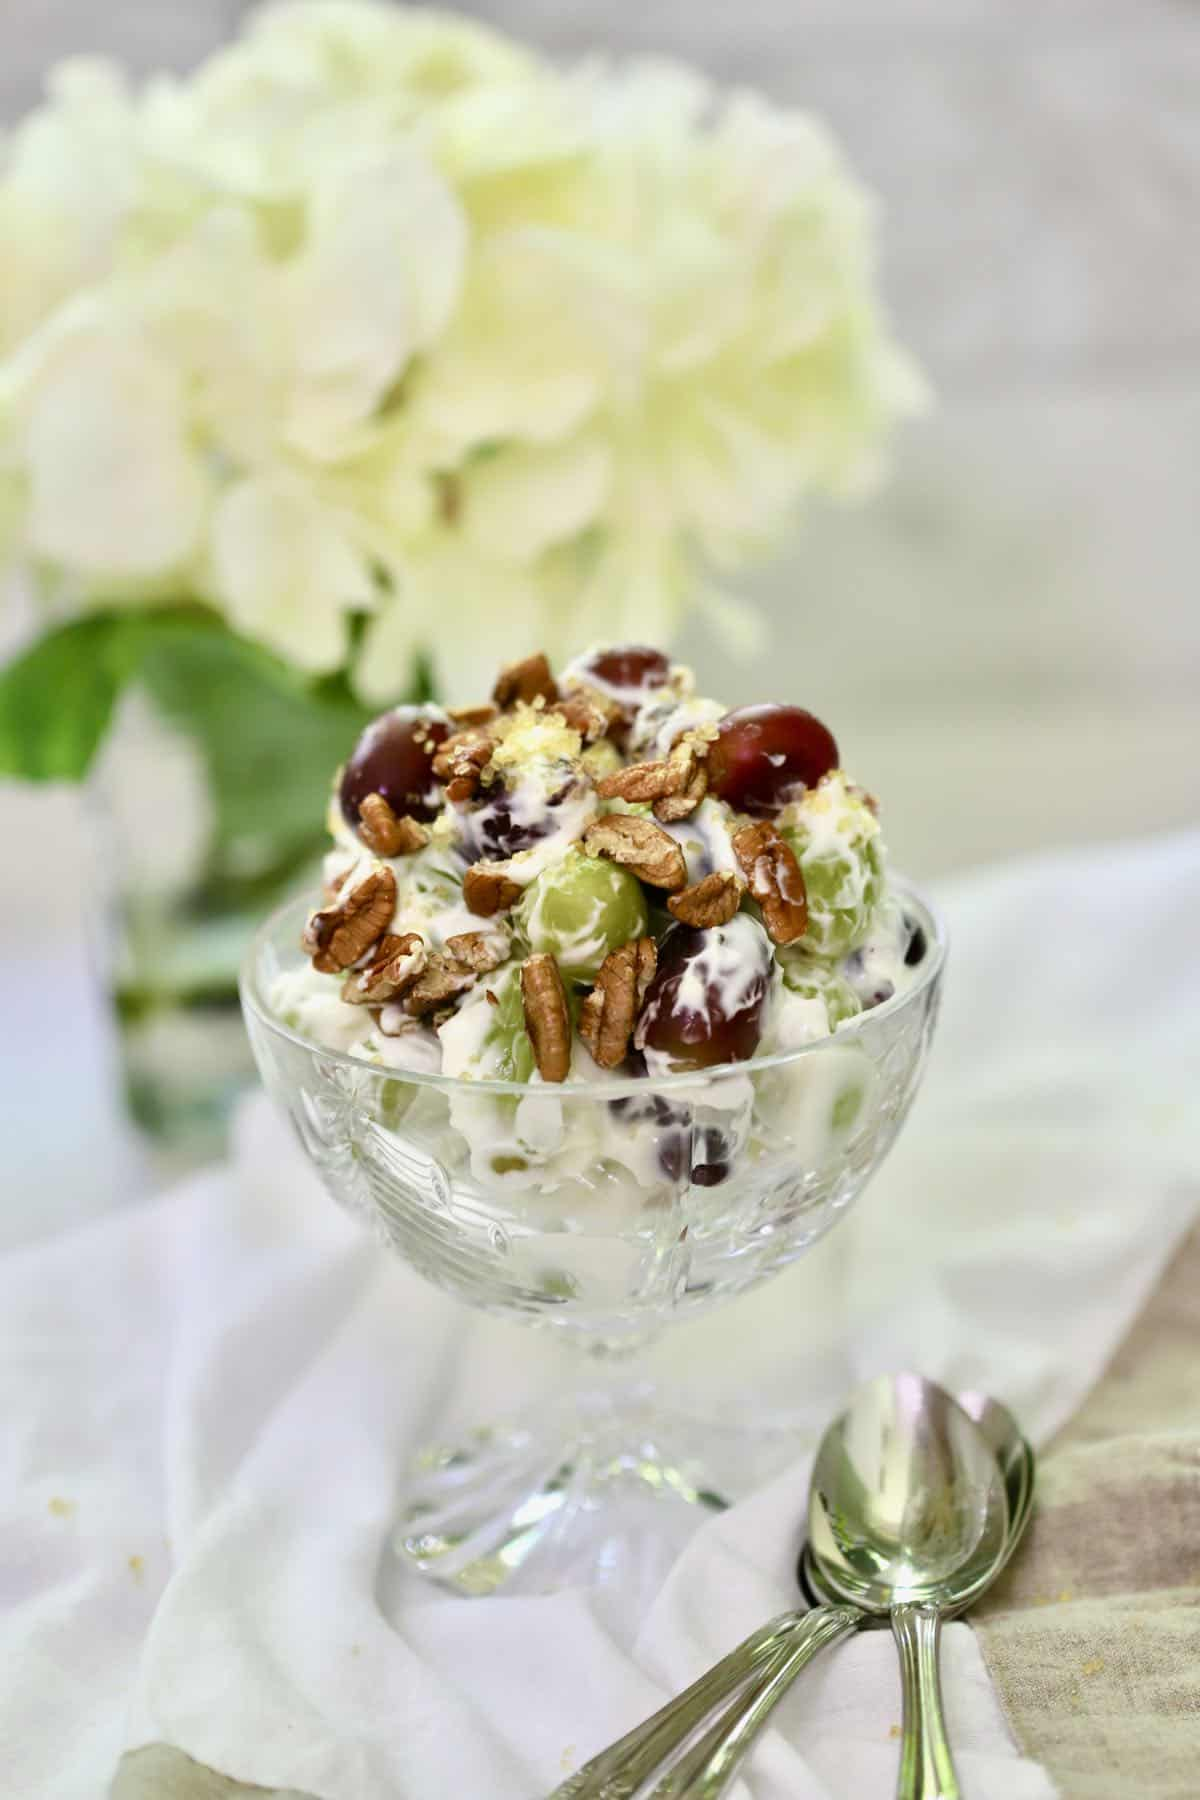 Grape salad topped with pecans in a crystal dessert dish.